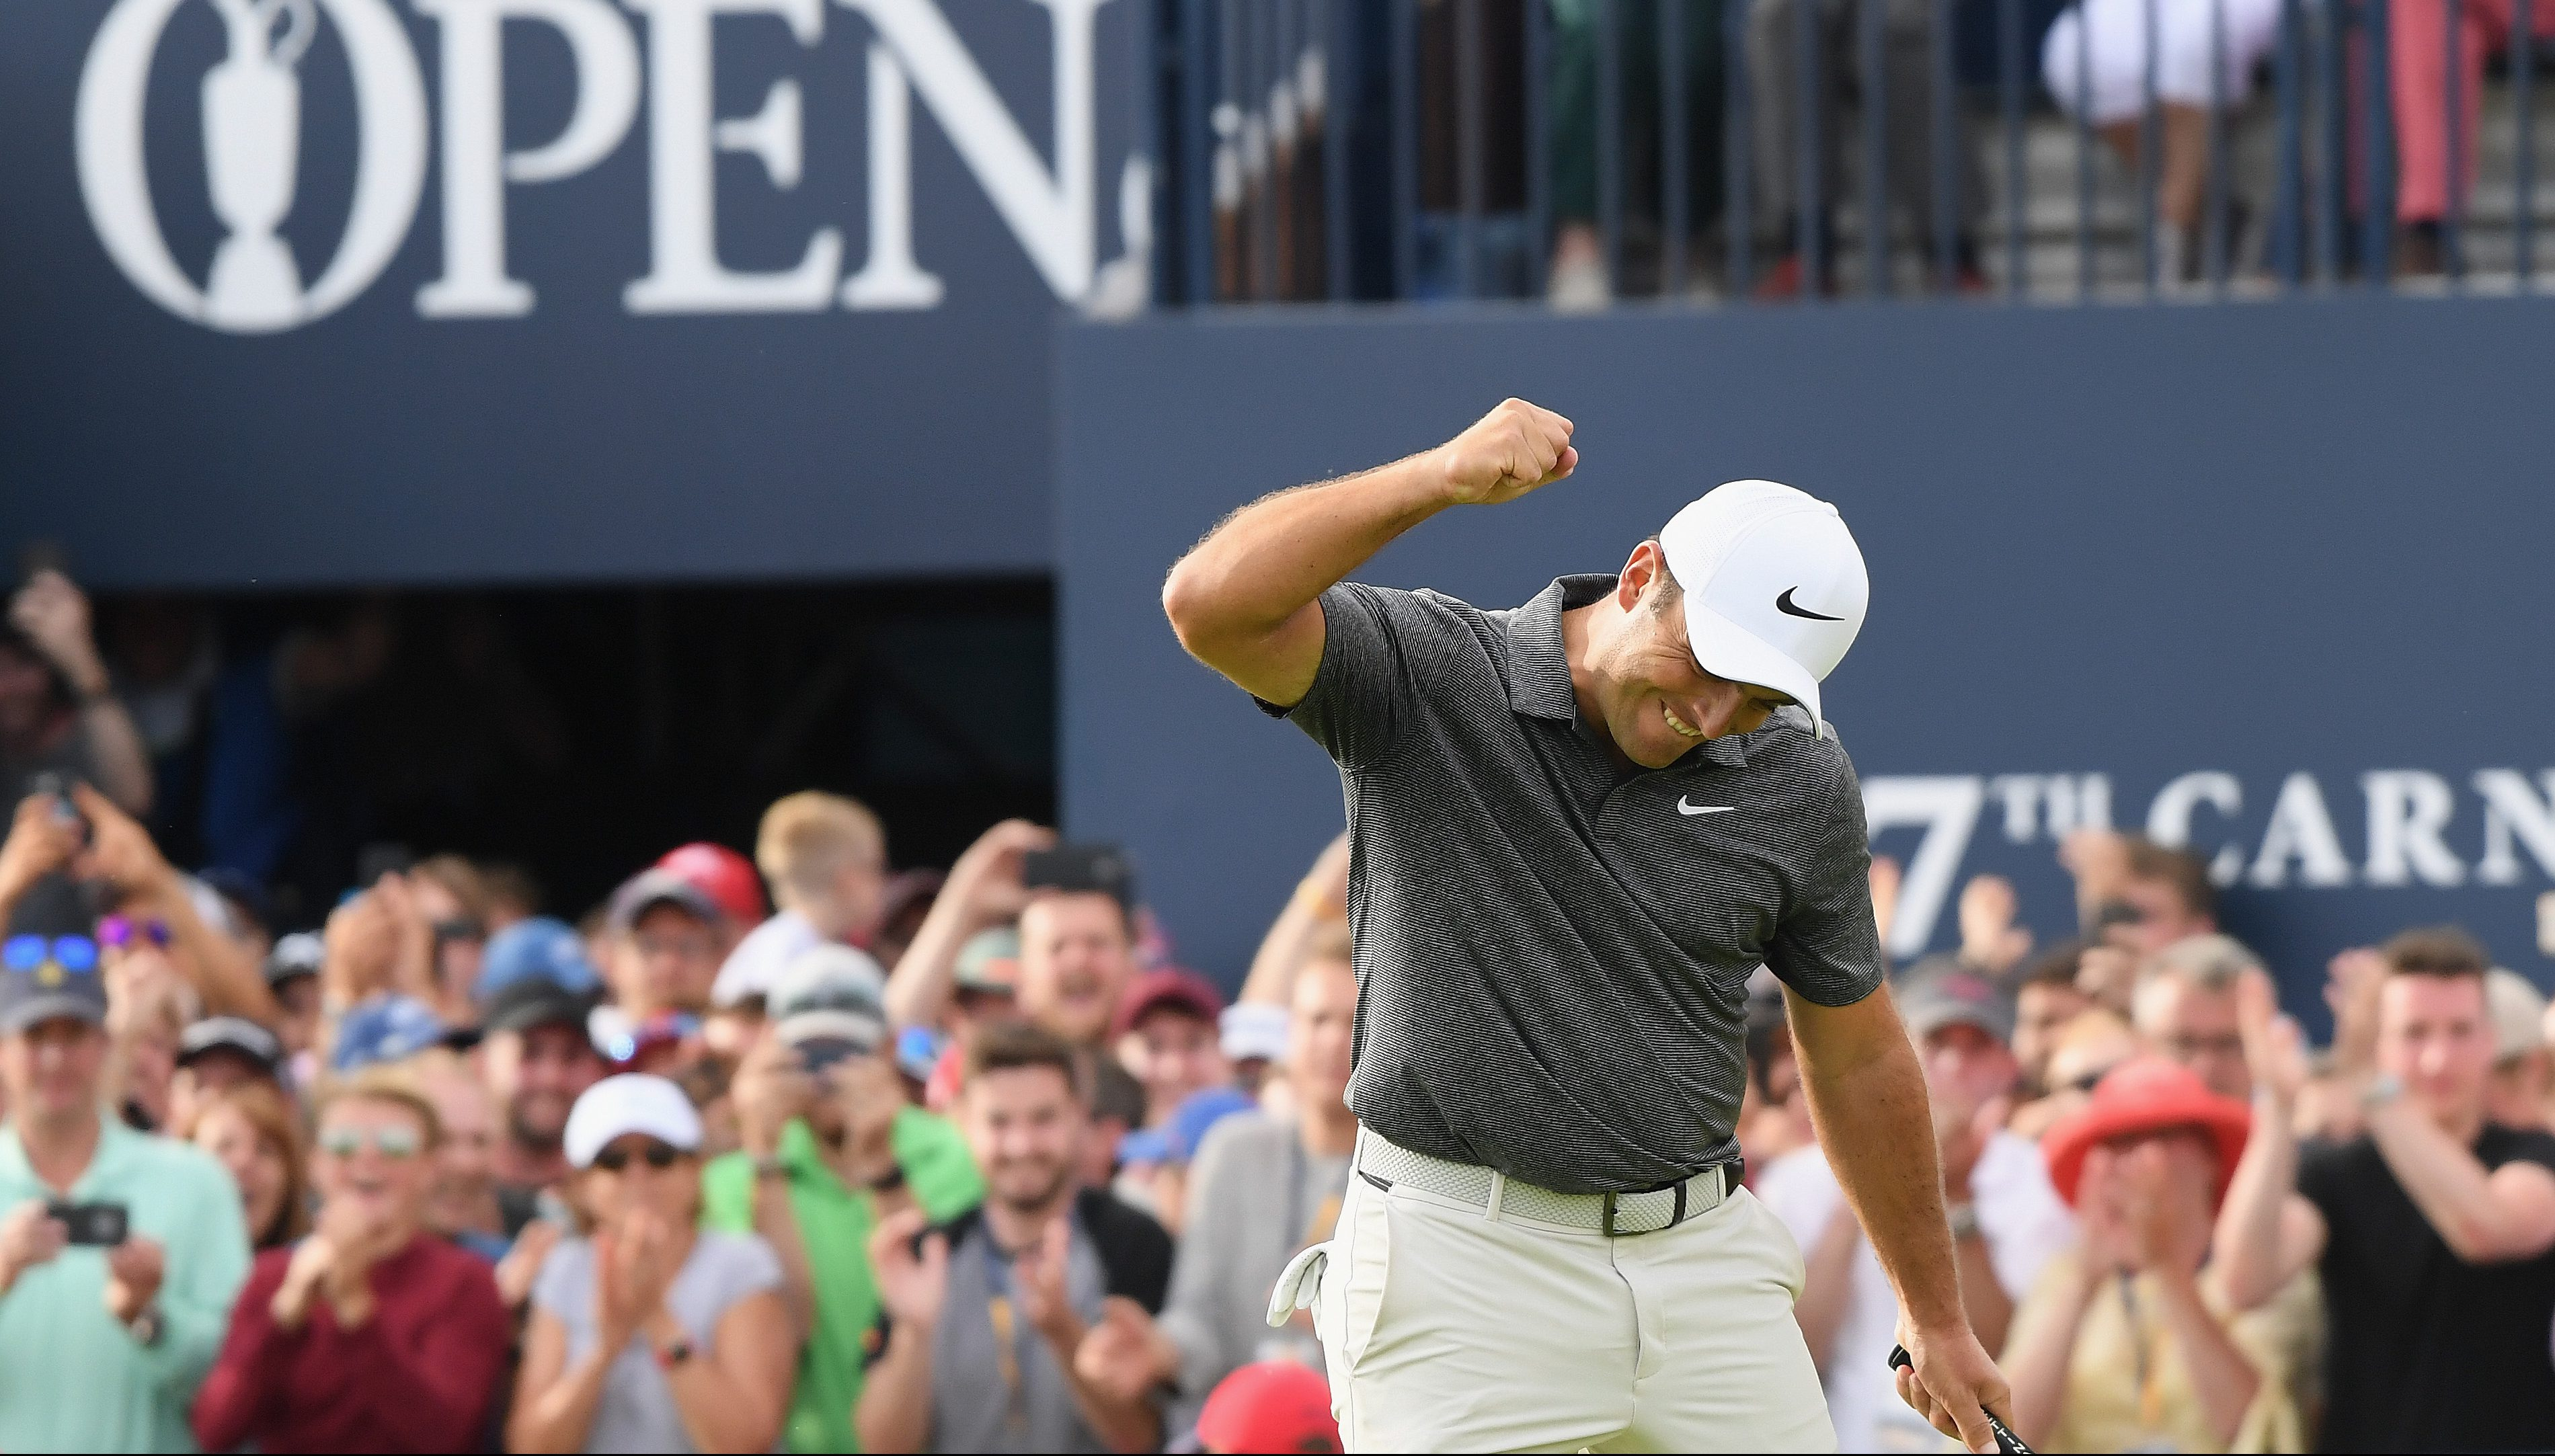 CARNOUSTIE, SCOTLAND - JULY 22: Francesco Molinari of Italy celebrates a birdie on the 18th hole during the final round of the 147th Open Championship at Carnoustie Golf Club on July 22, 2018 in Carnoustie, Scotland. (Photo by Harry How/Getty Images)